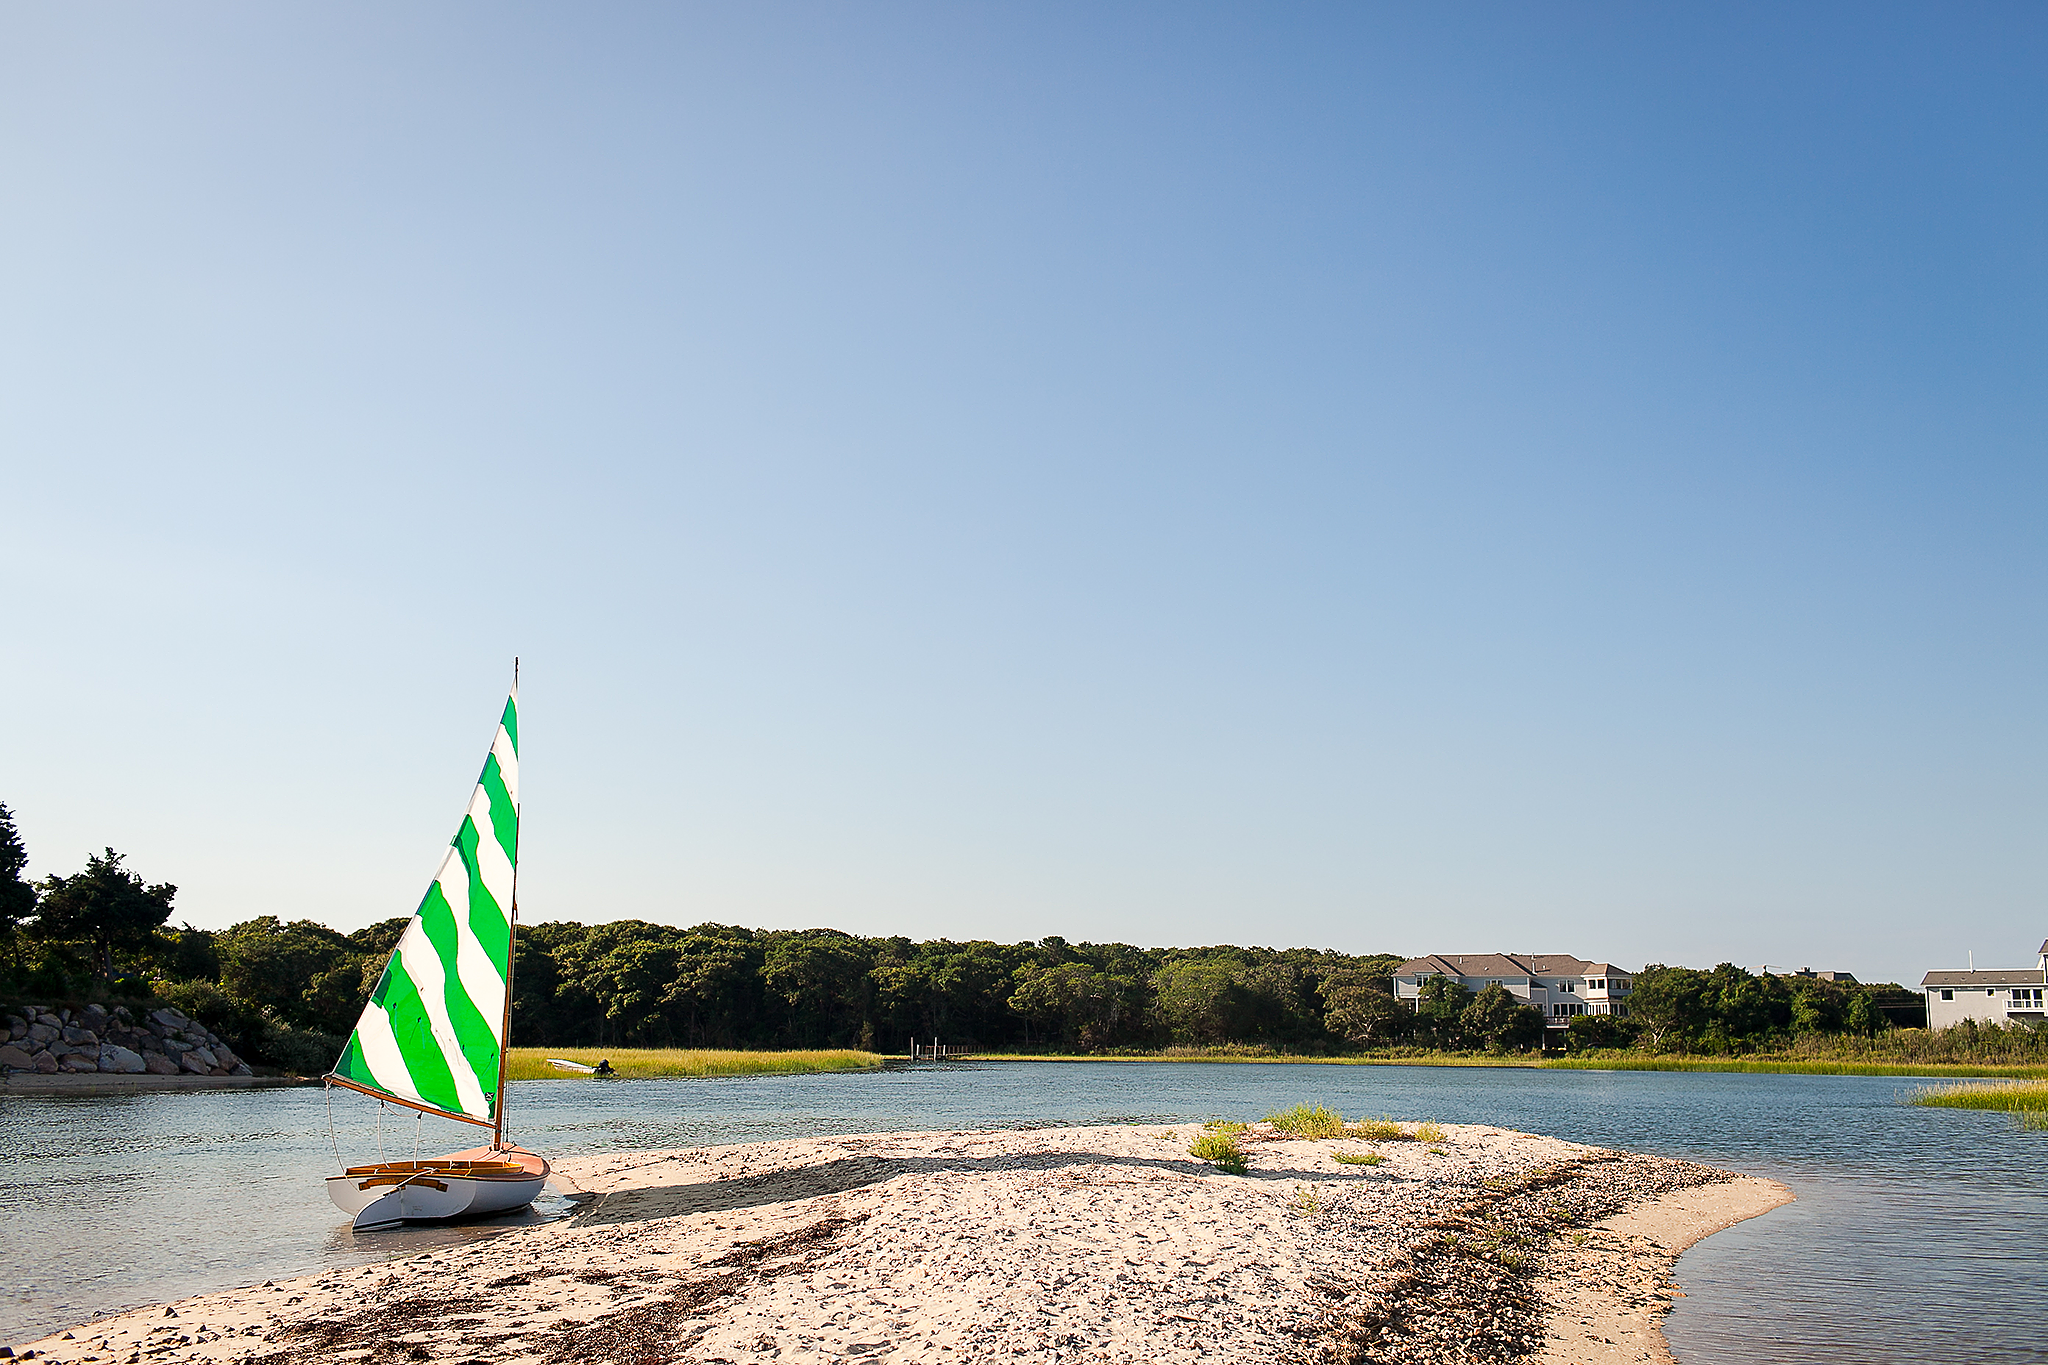 Sailboat on shore with green and white sale